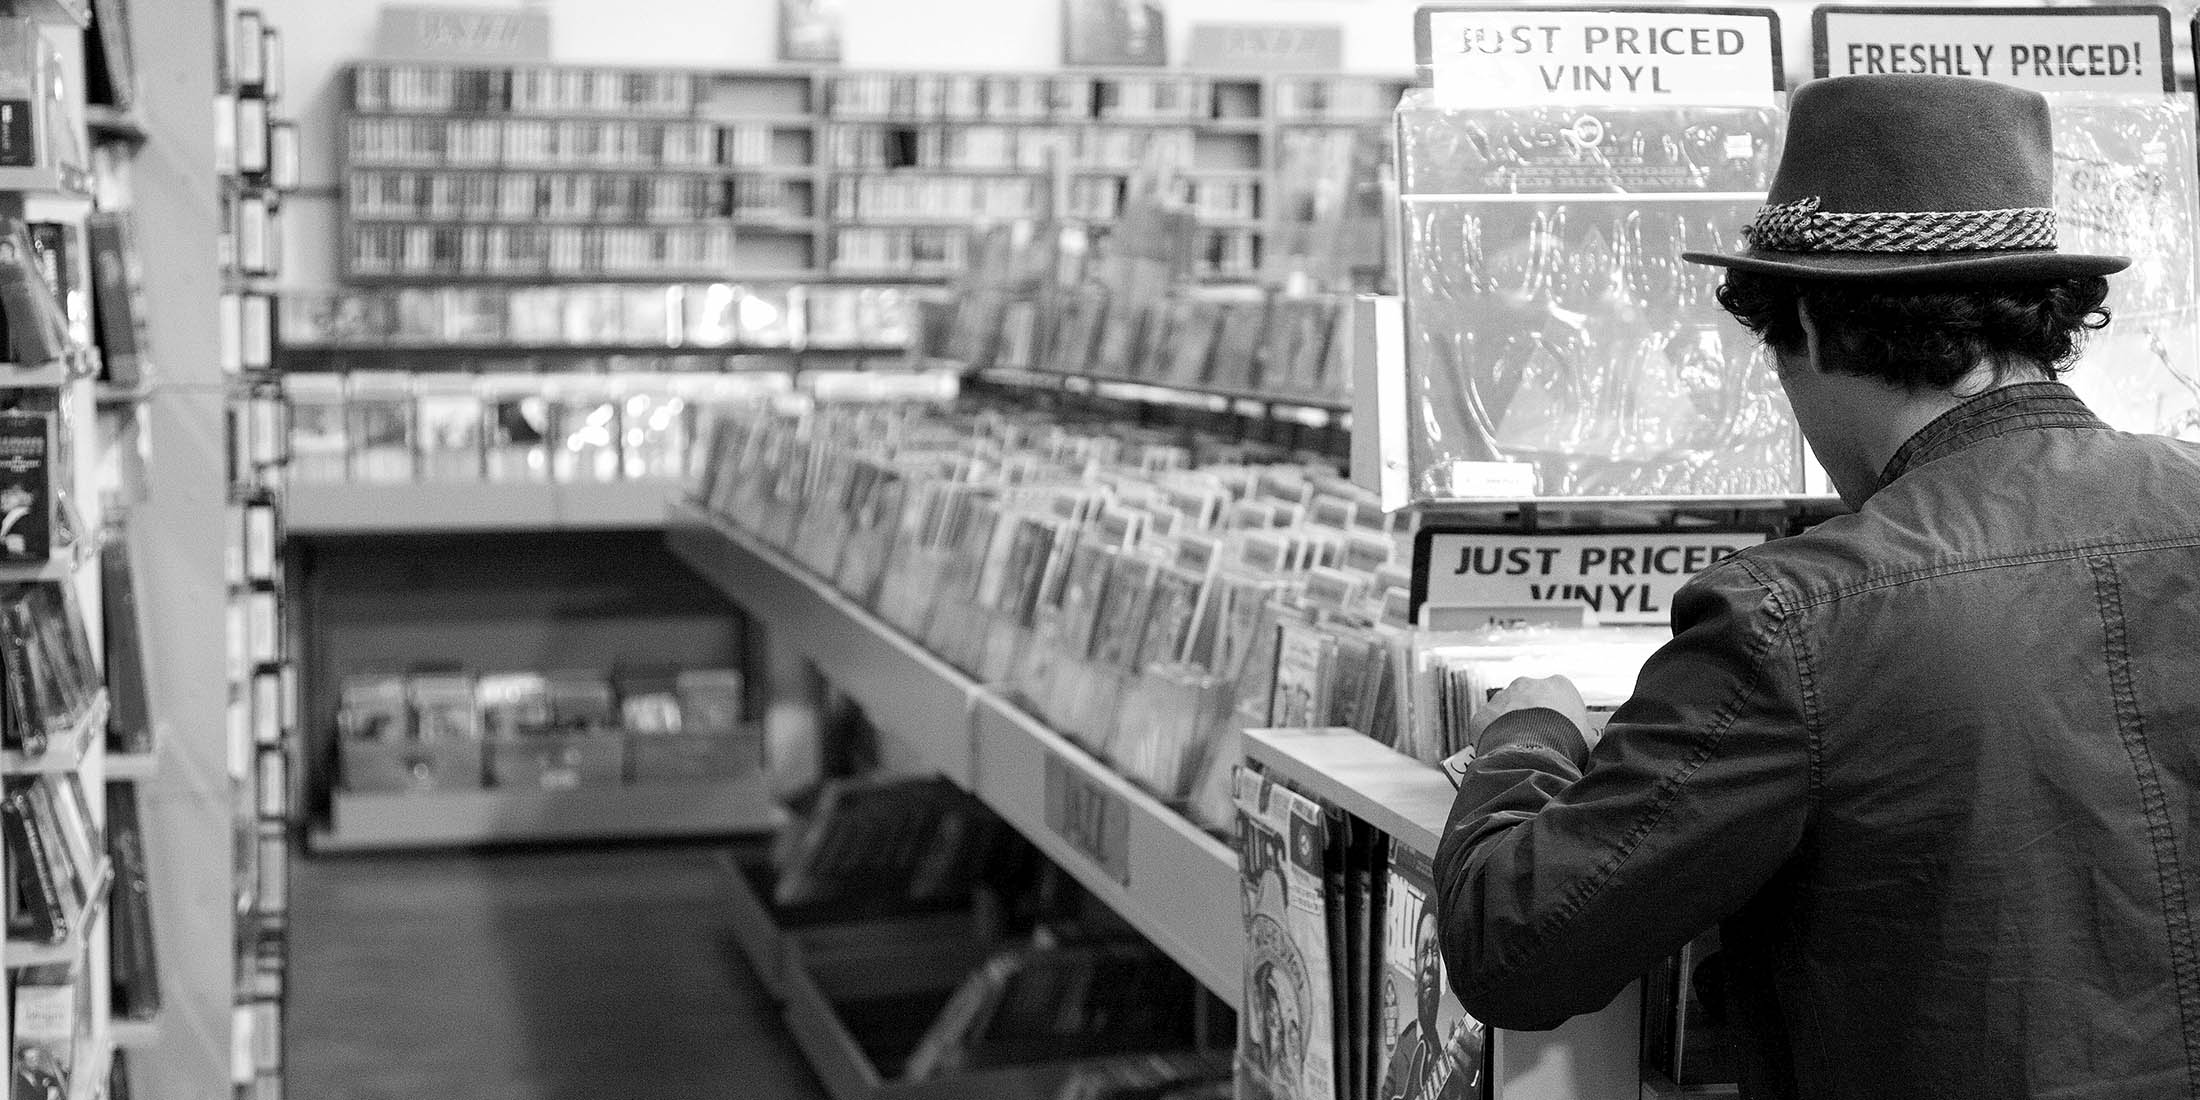 Man Looking Through Records at Record Store